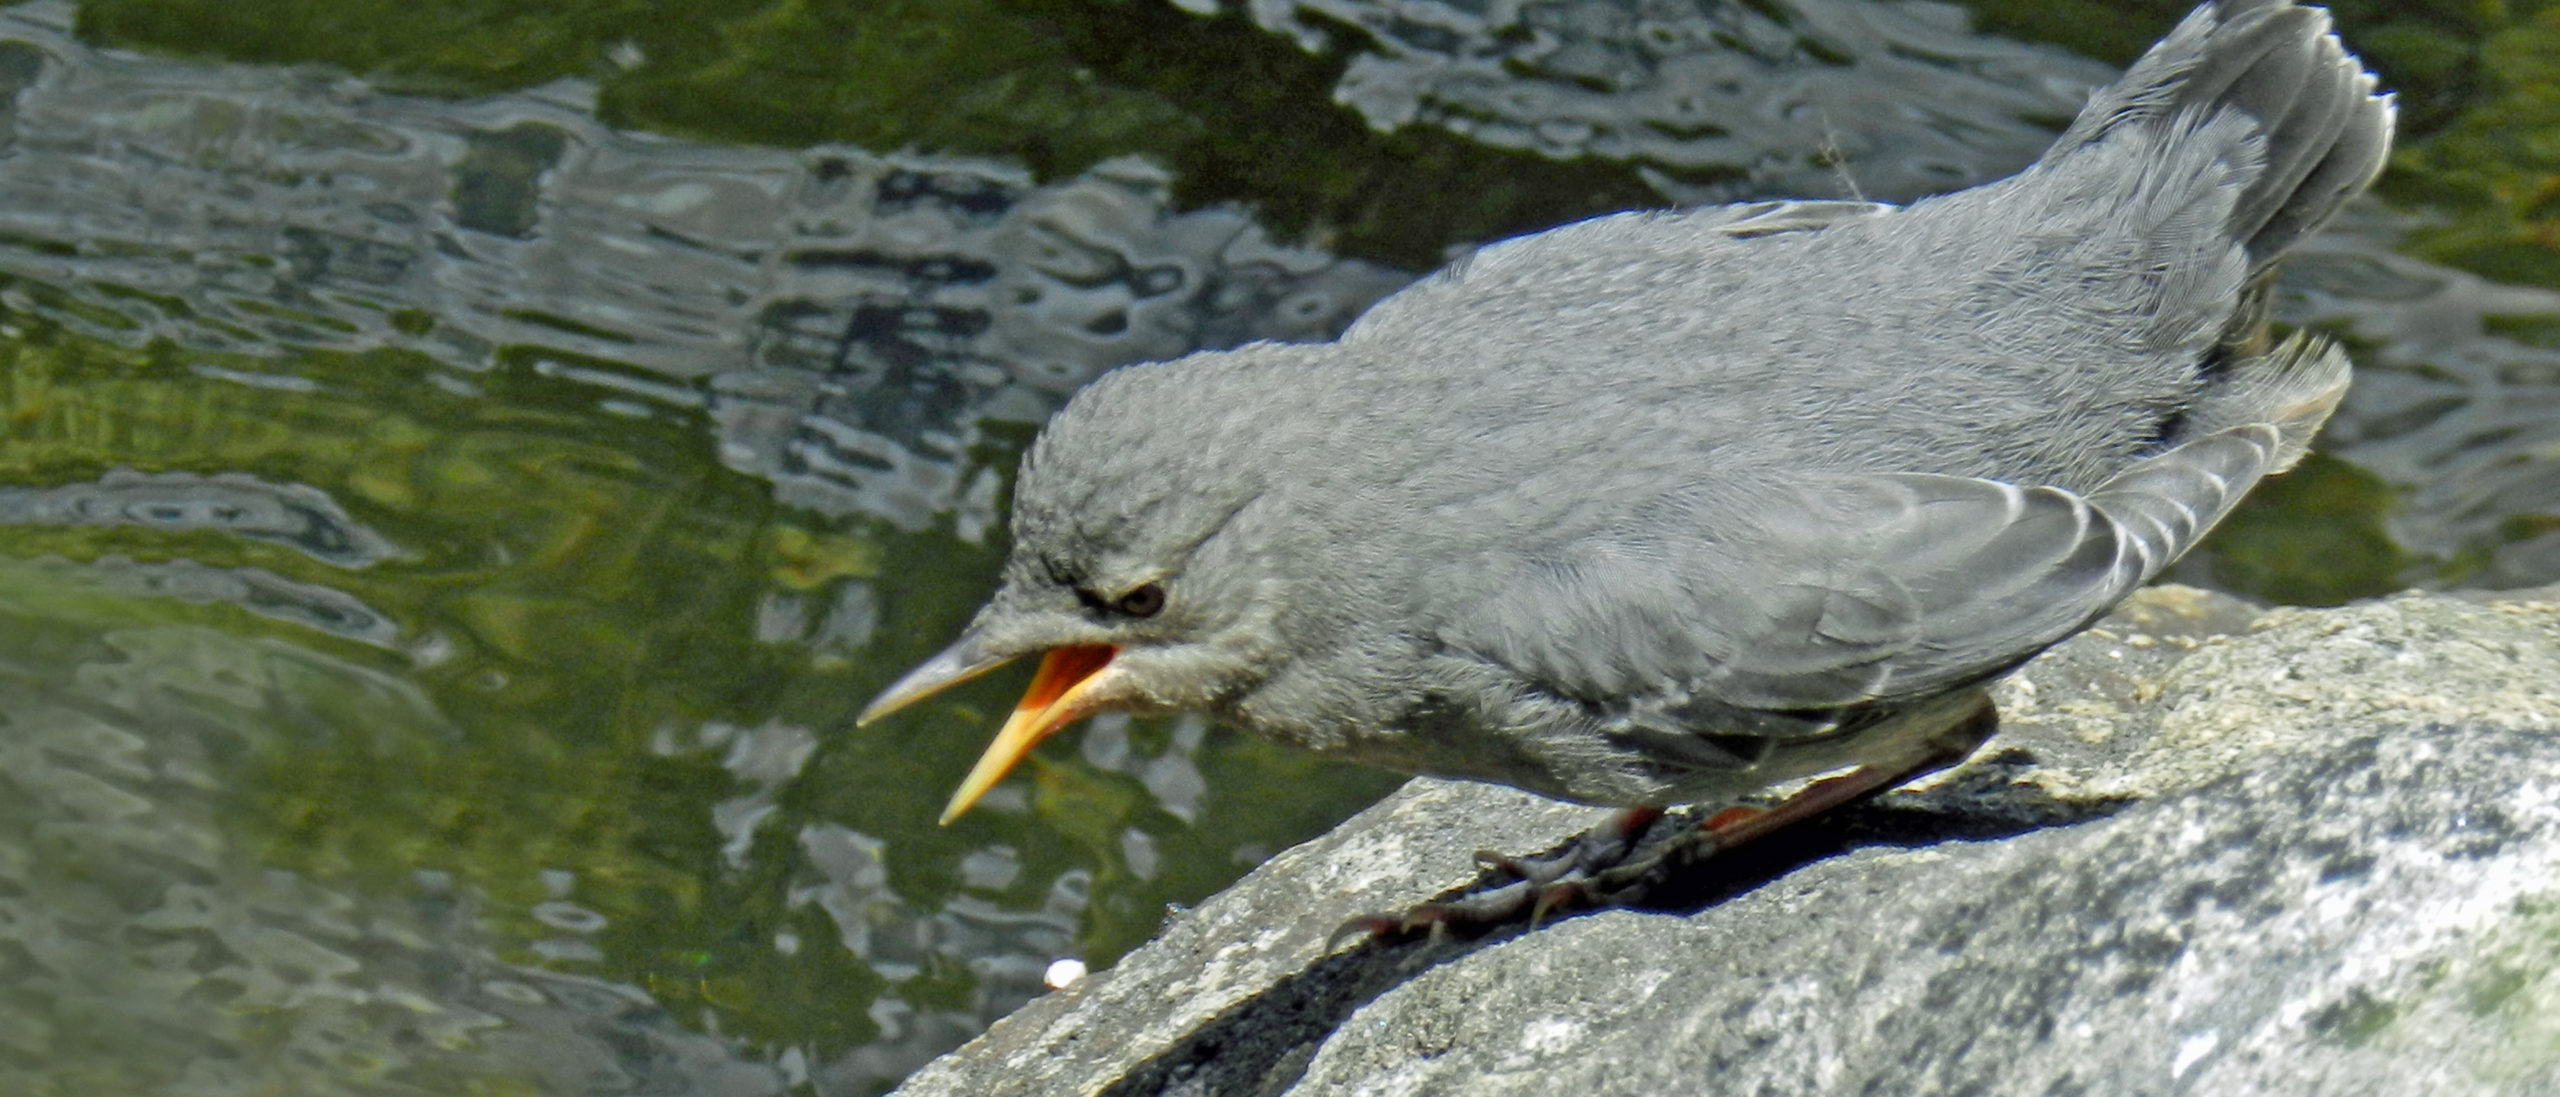 A close up of a gray bird sitting on a rock near green water.